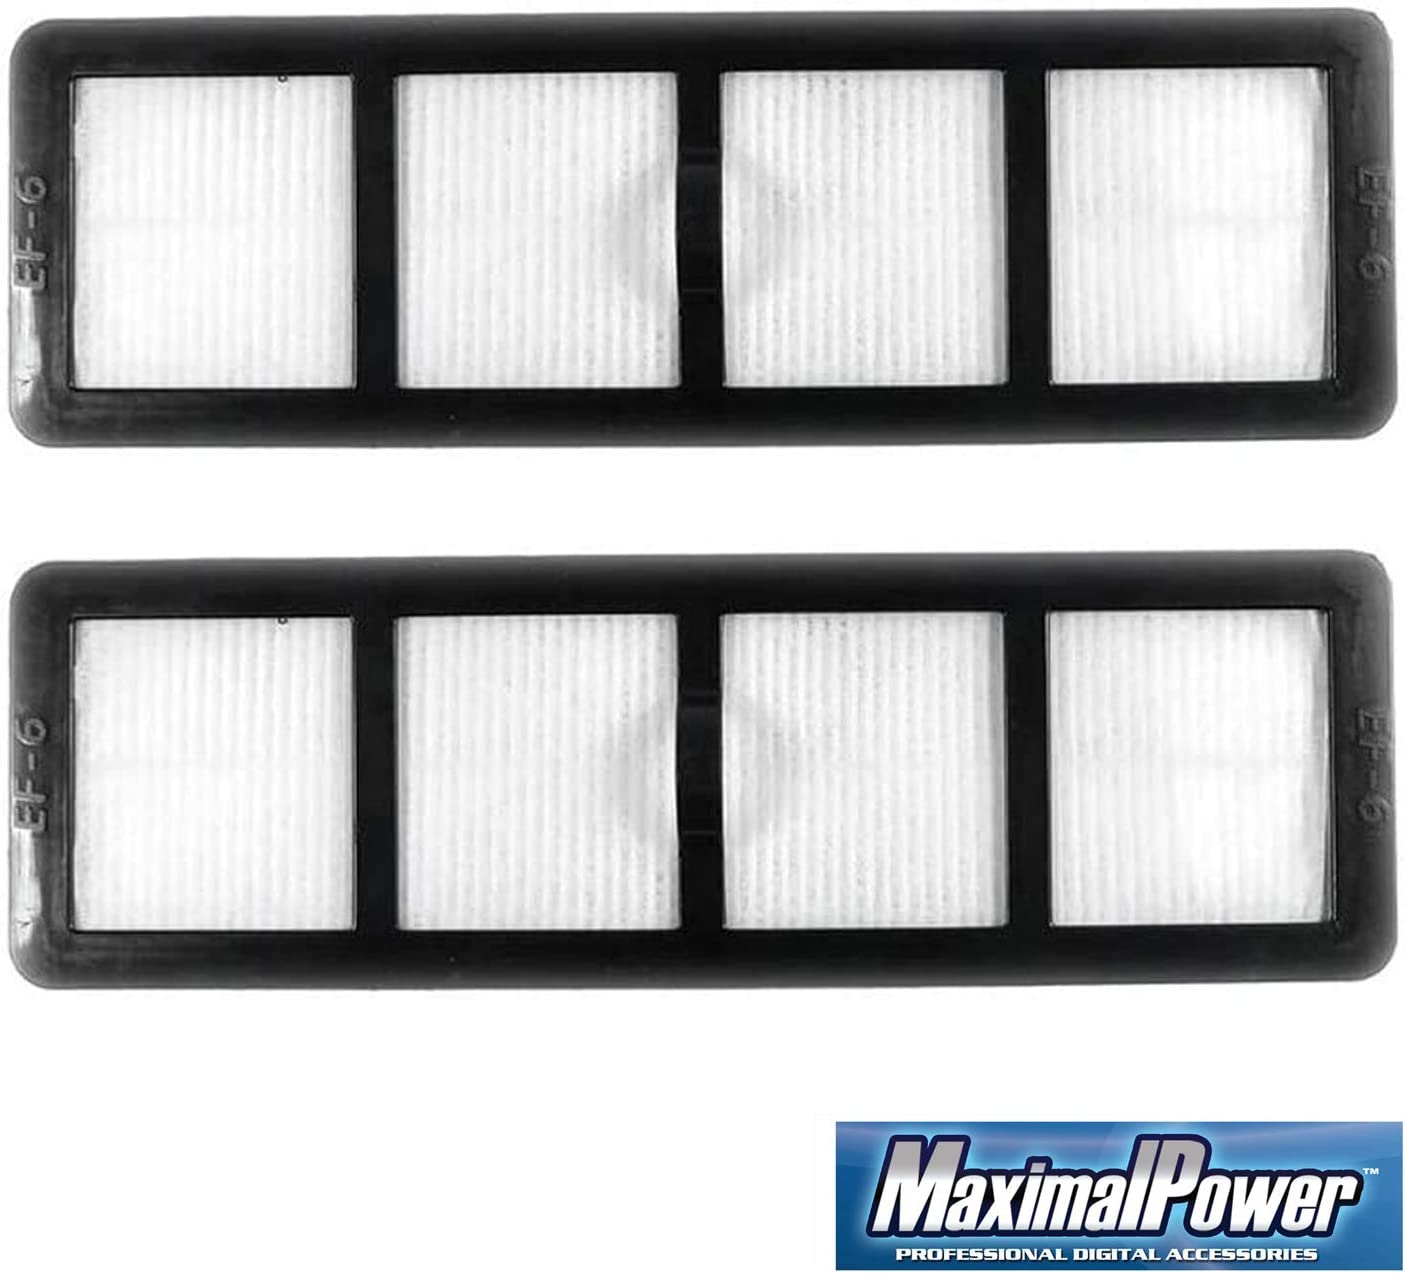 MaximalPower Replacement Vacuum Filter for Eureka Vac Part # EF6, EF-6, 69963-4, 83091-1, 83091, 69963 | Compatible with Eureka Vacuum Models AS1000, AS1001, SM1155A, AS1008AX, AS3012A (2 Pack)